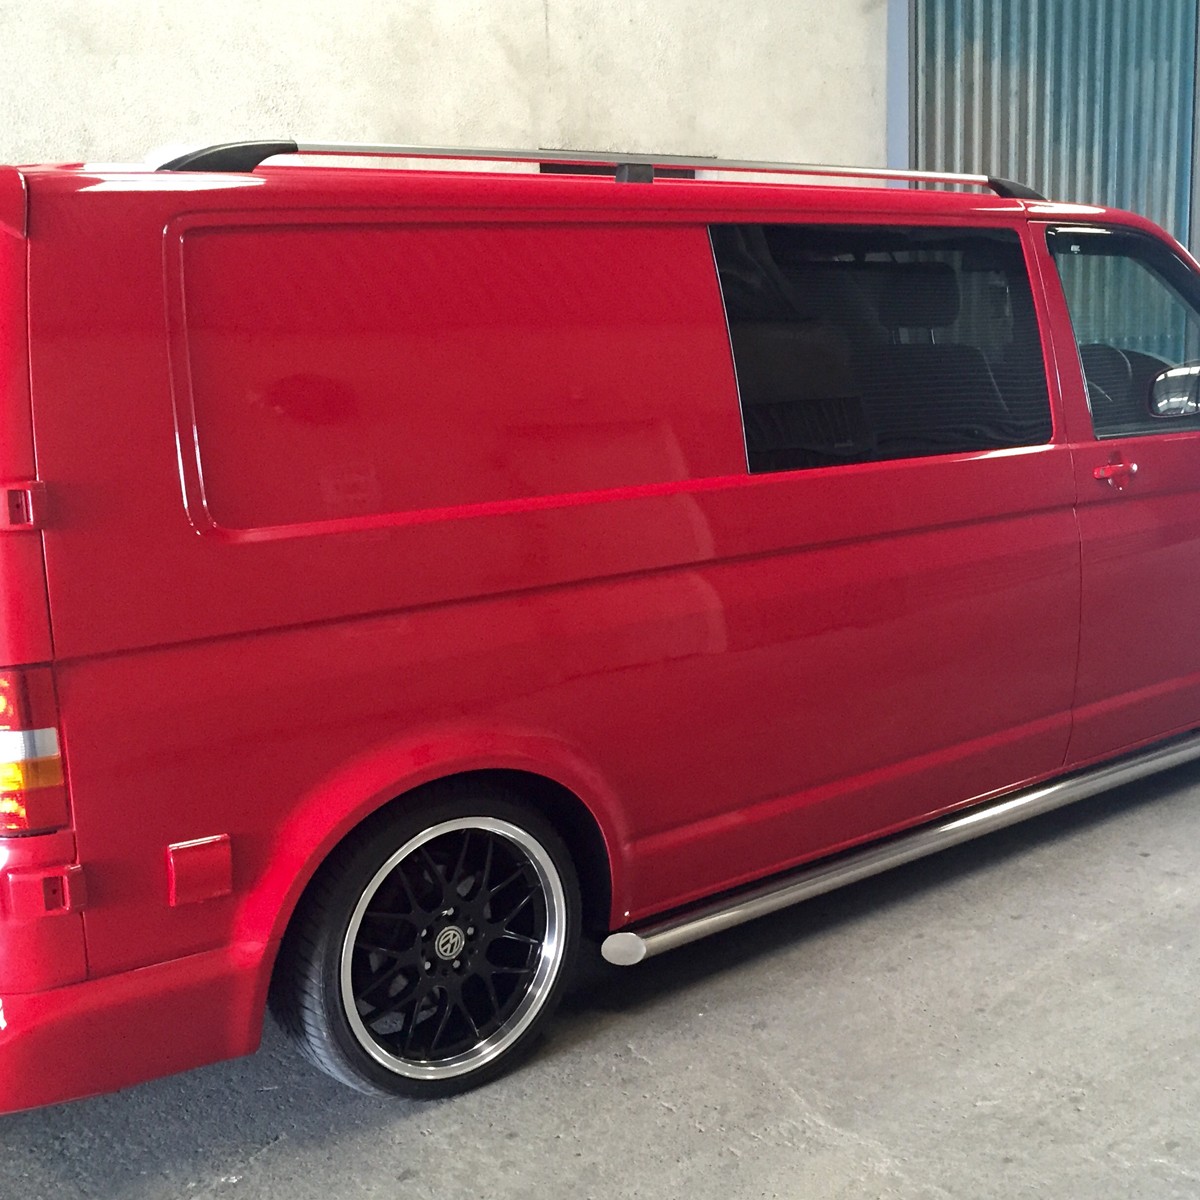 VW Transporter T5 Roof Rails LWB